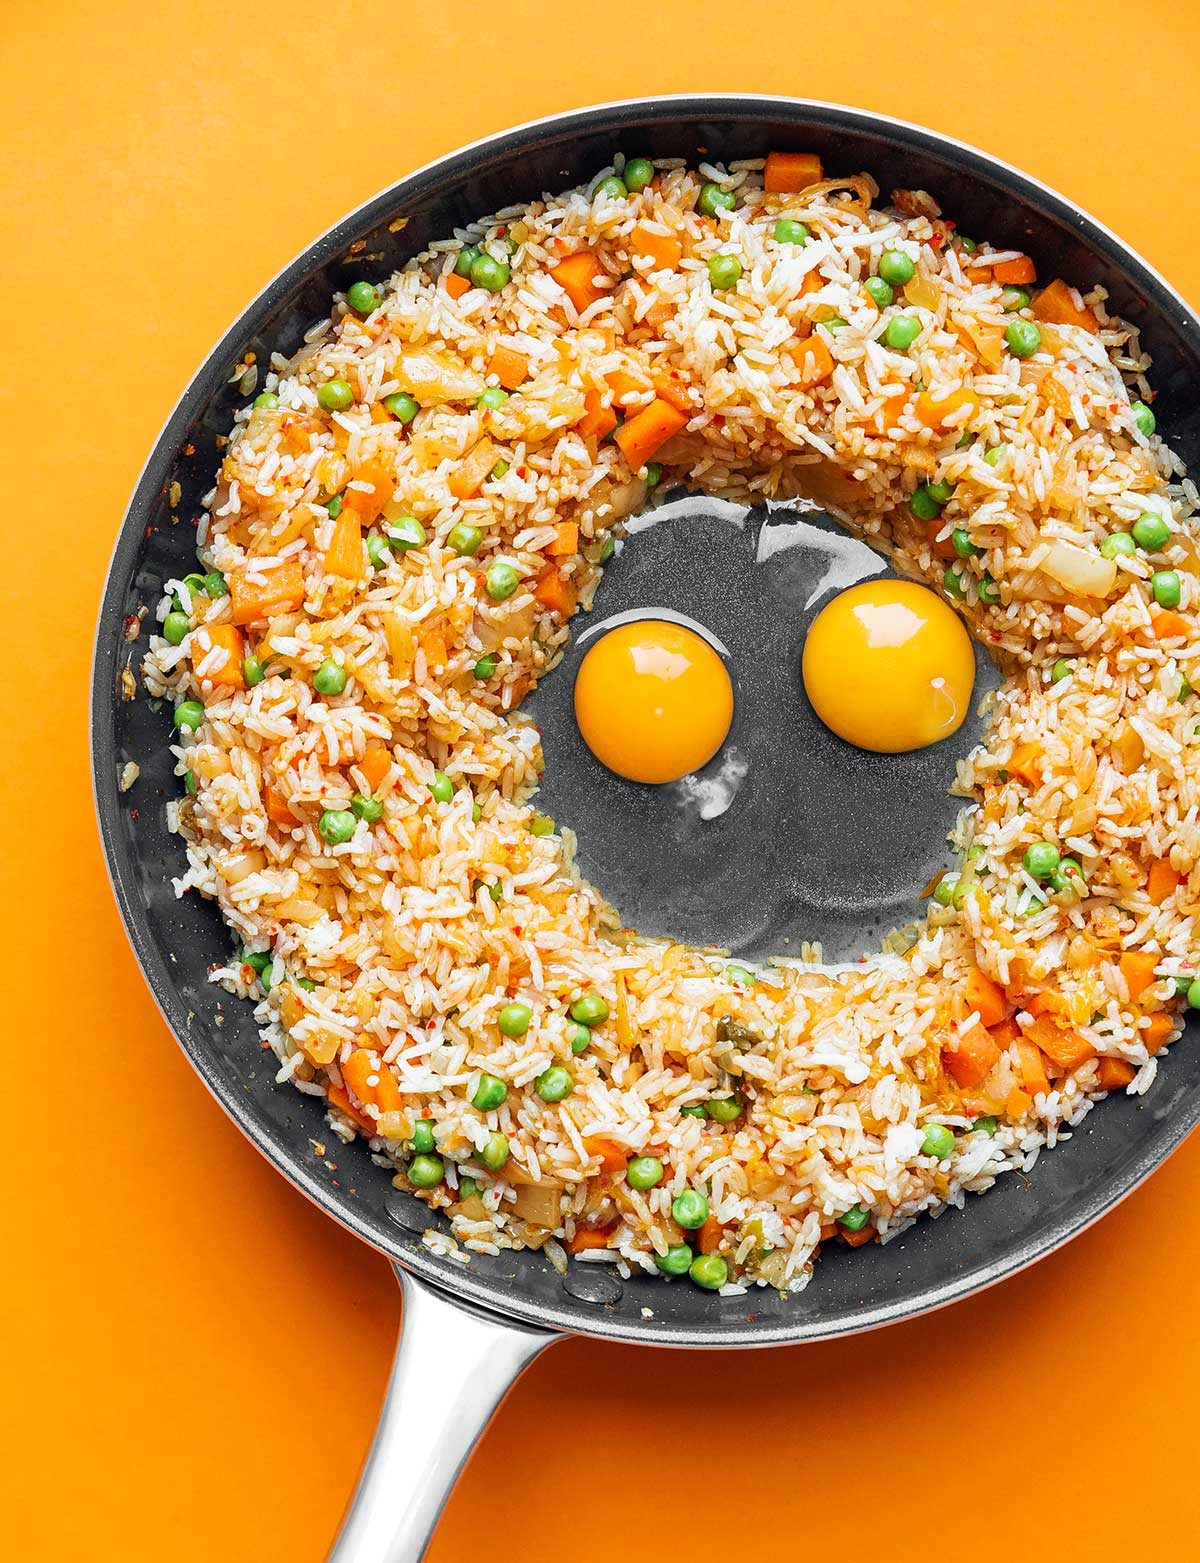 Kimchi fried rice and eggs being sautéed in a skillet on a yellow background